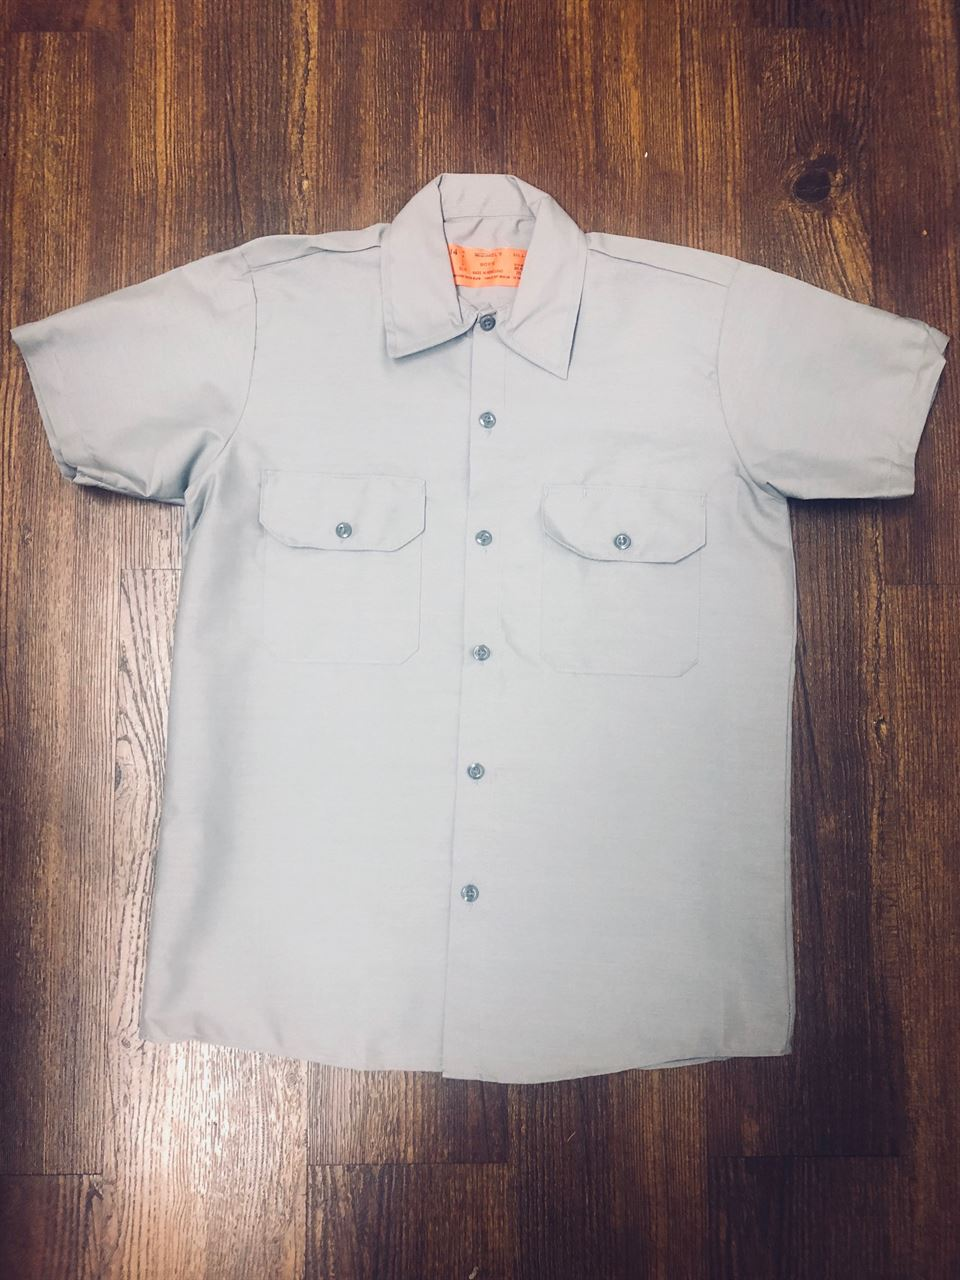 Picture of Gray Work Shirt with Flaps-Long & Short Sleeve-Men's and Boy's Sizes